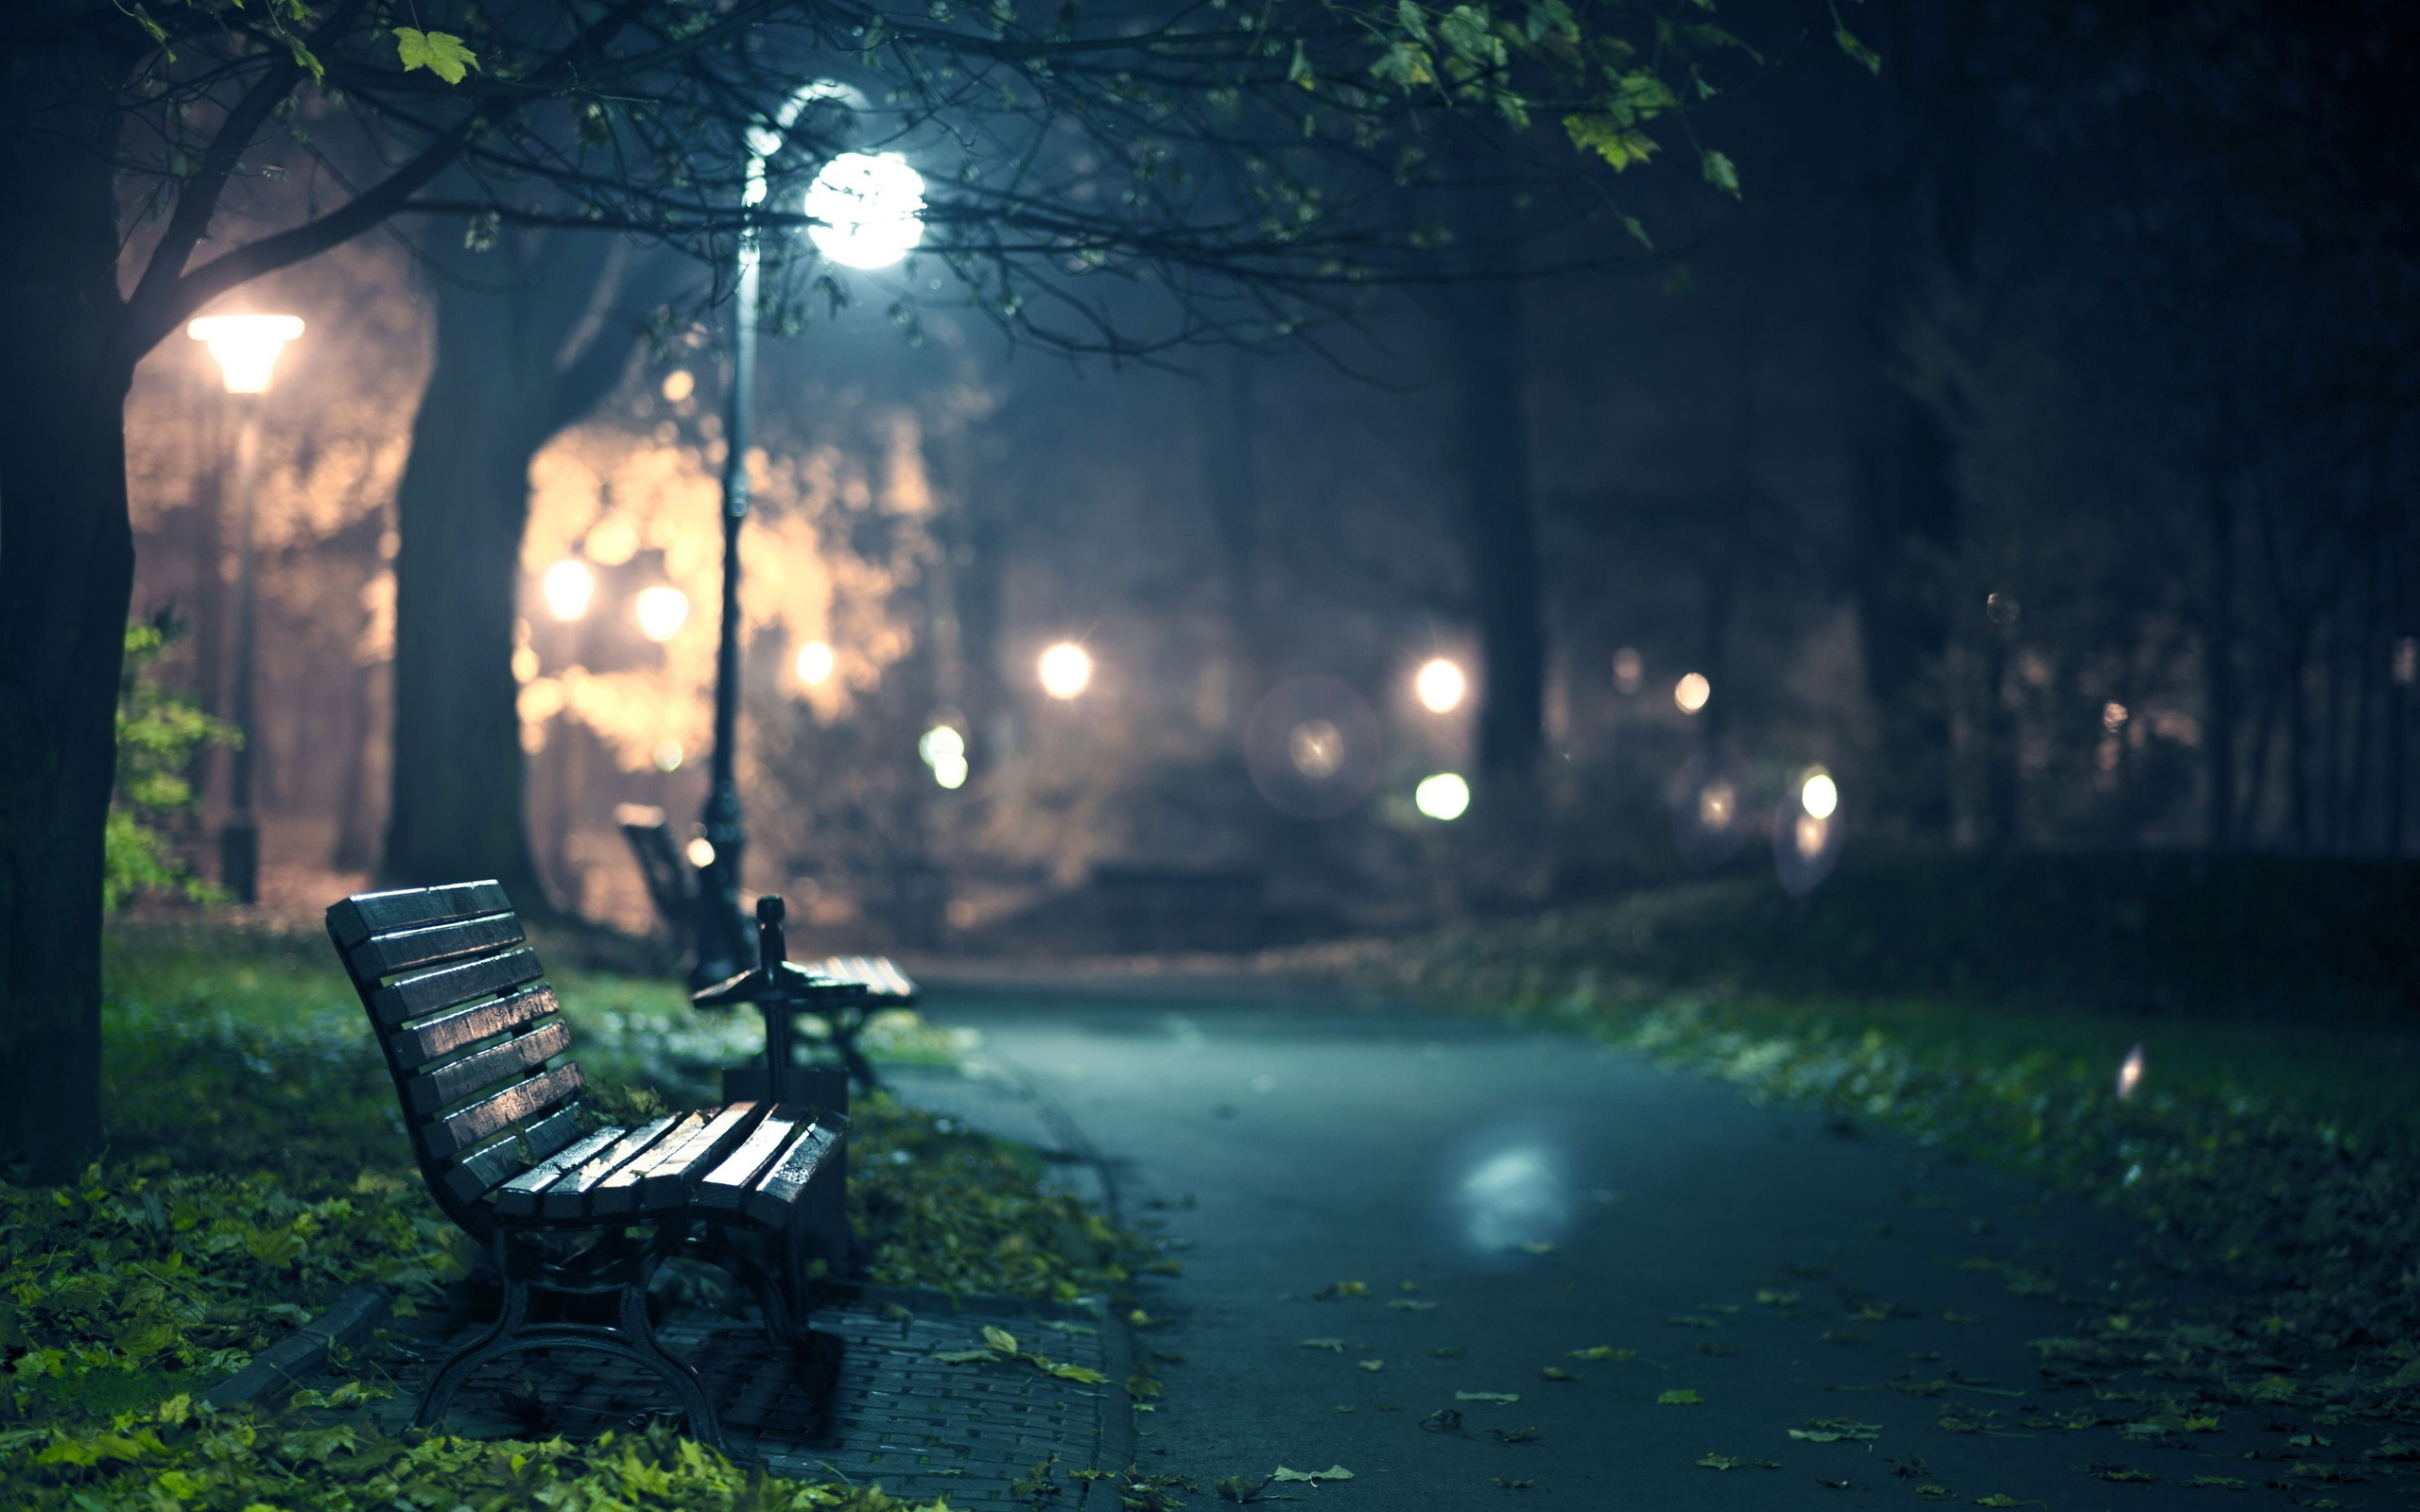 Romantic park bench evening